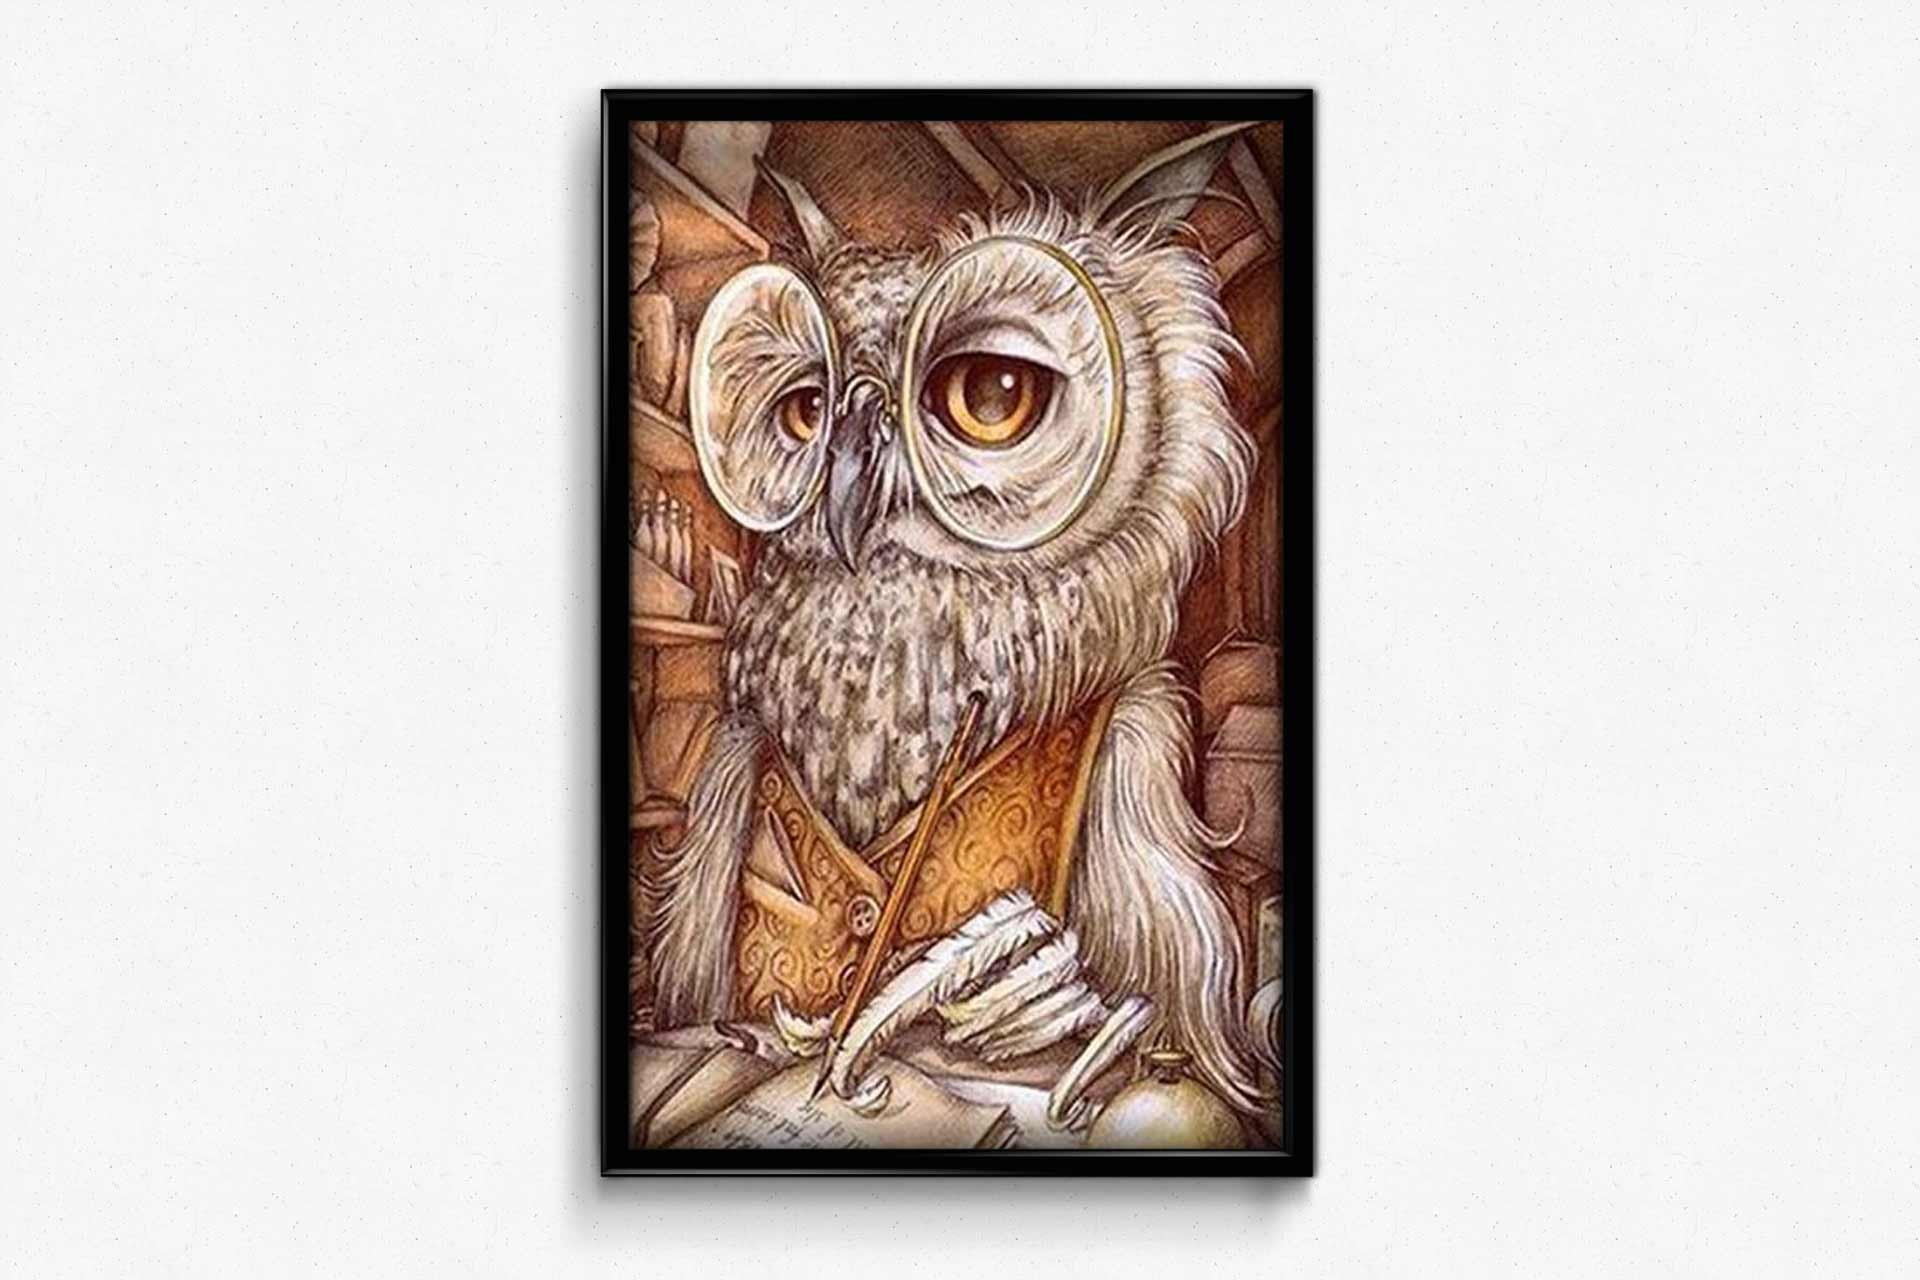 Wise Owl DIY Diamond Painting Kit